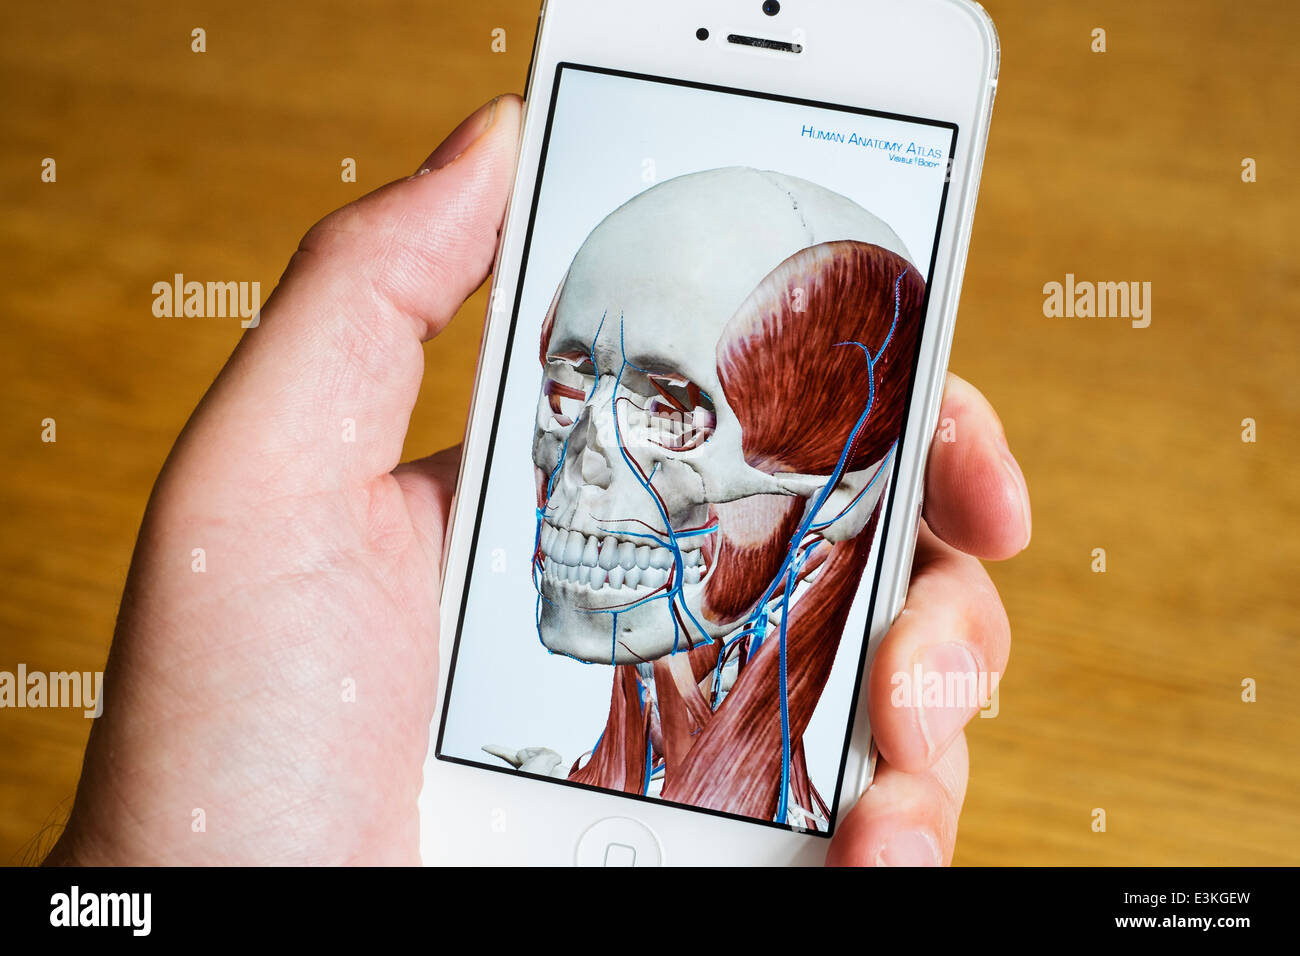 Detail of educational medical 3D human anatomy atlas on an iPhone ...